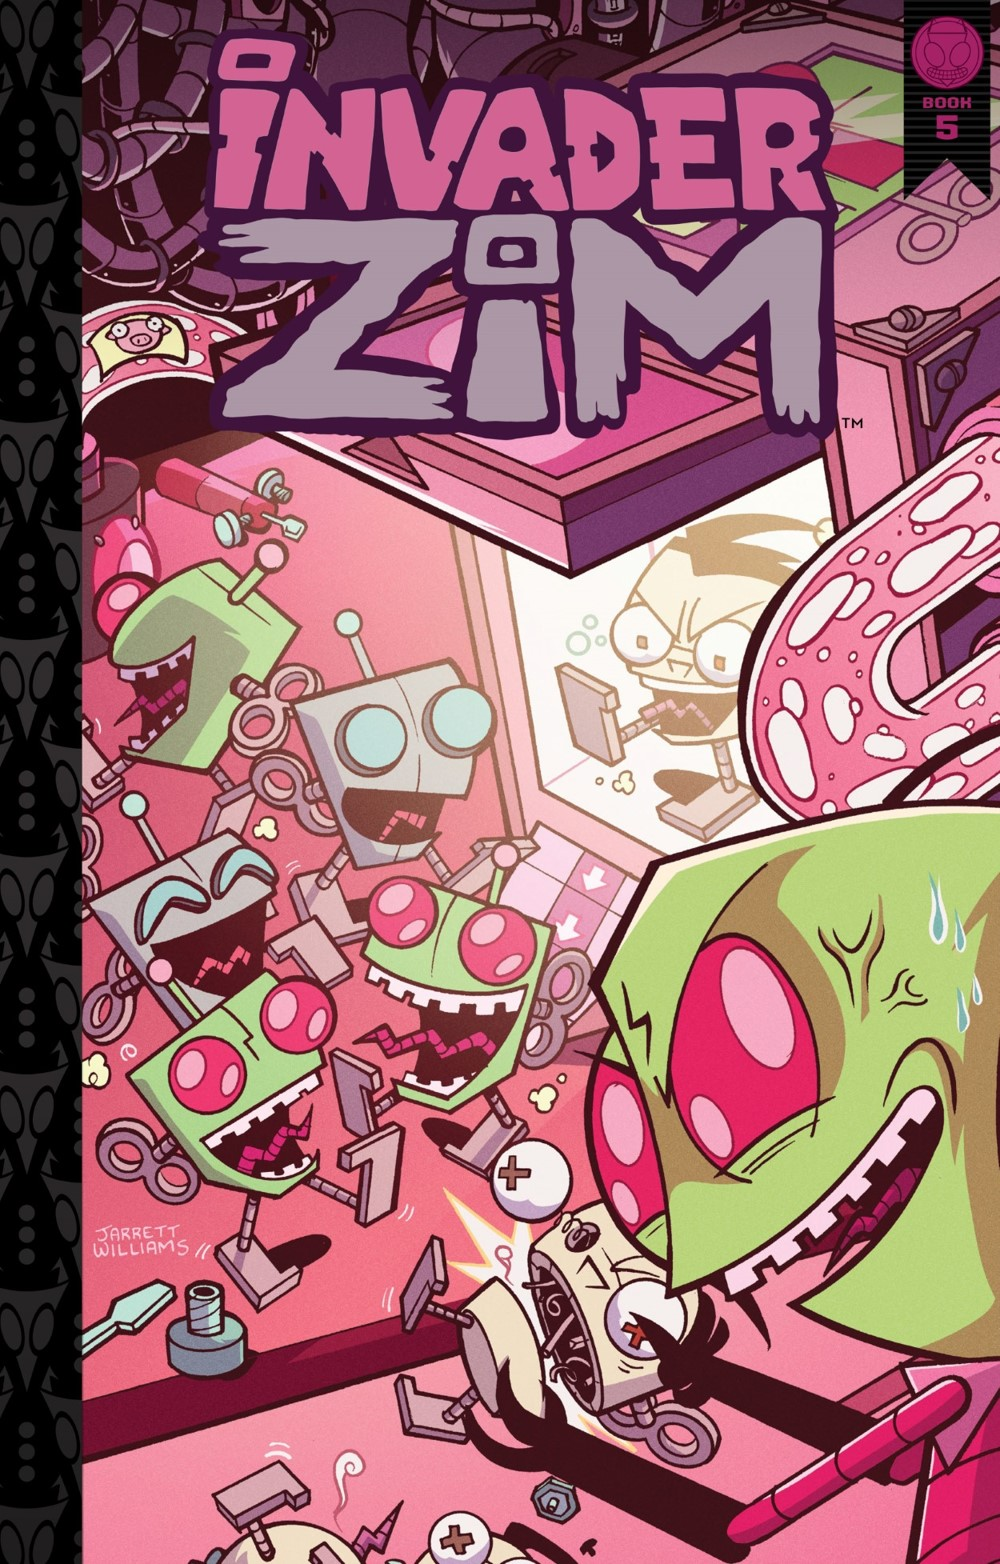 INVADERZIM5-HC-REFERENCE-001 ComicList: Oni Press New Releases for 09/29/2021